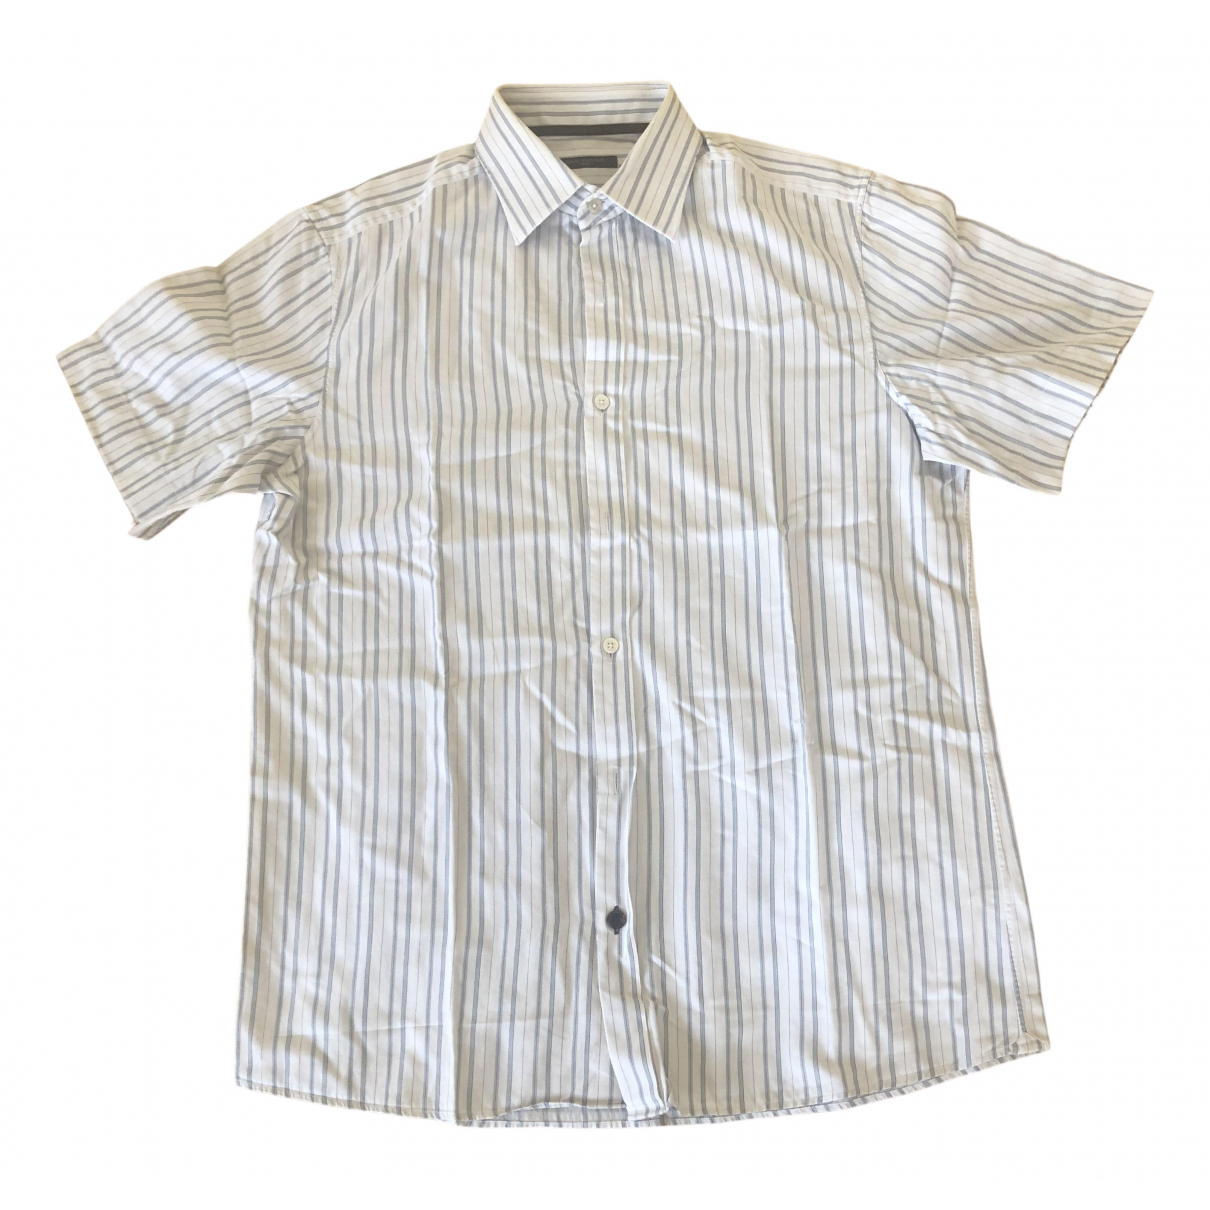 Louis Vuitton \N Beige Cotton Shirts for Men 40 EU (tour de cou / collar)